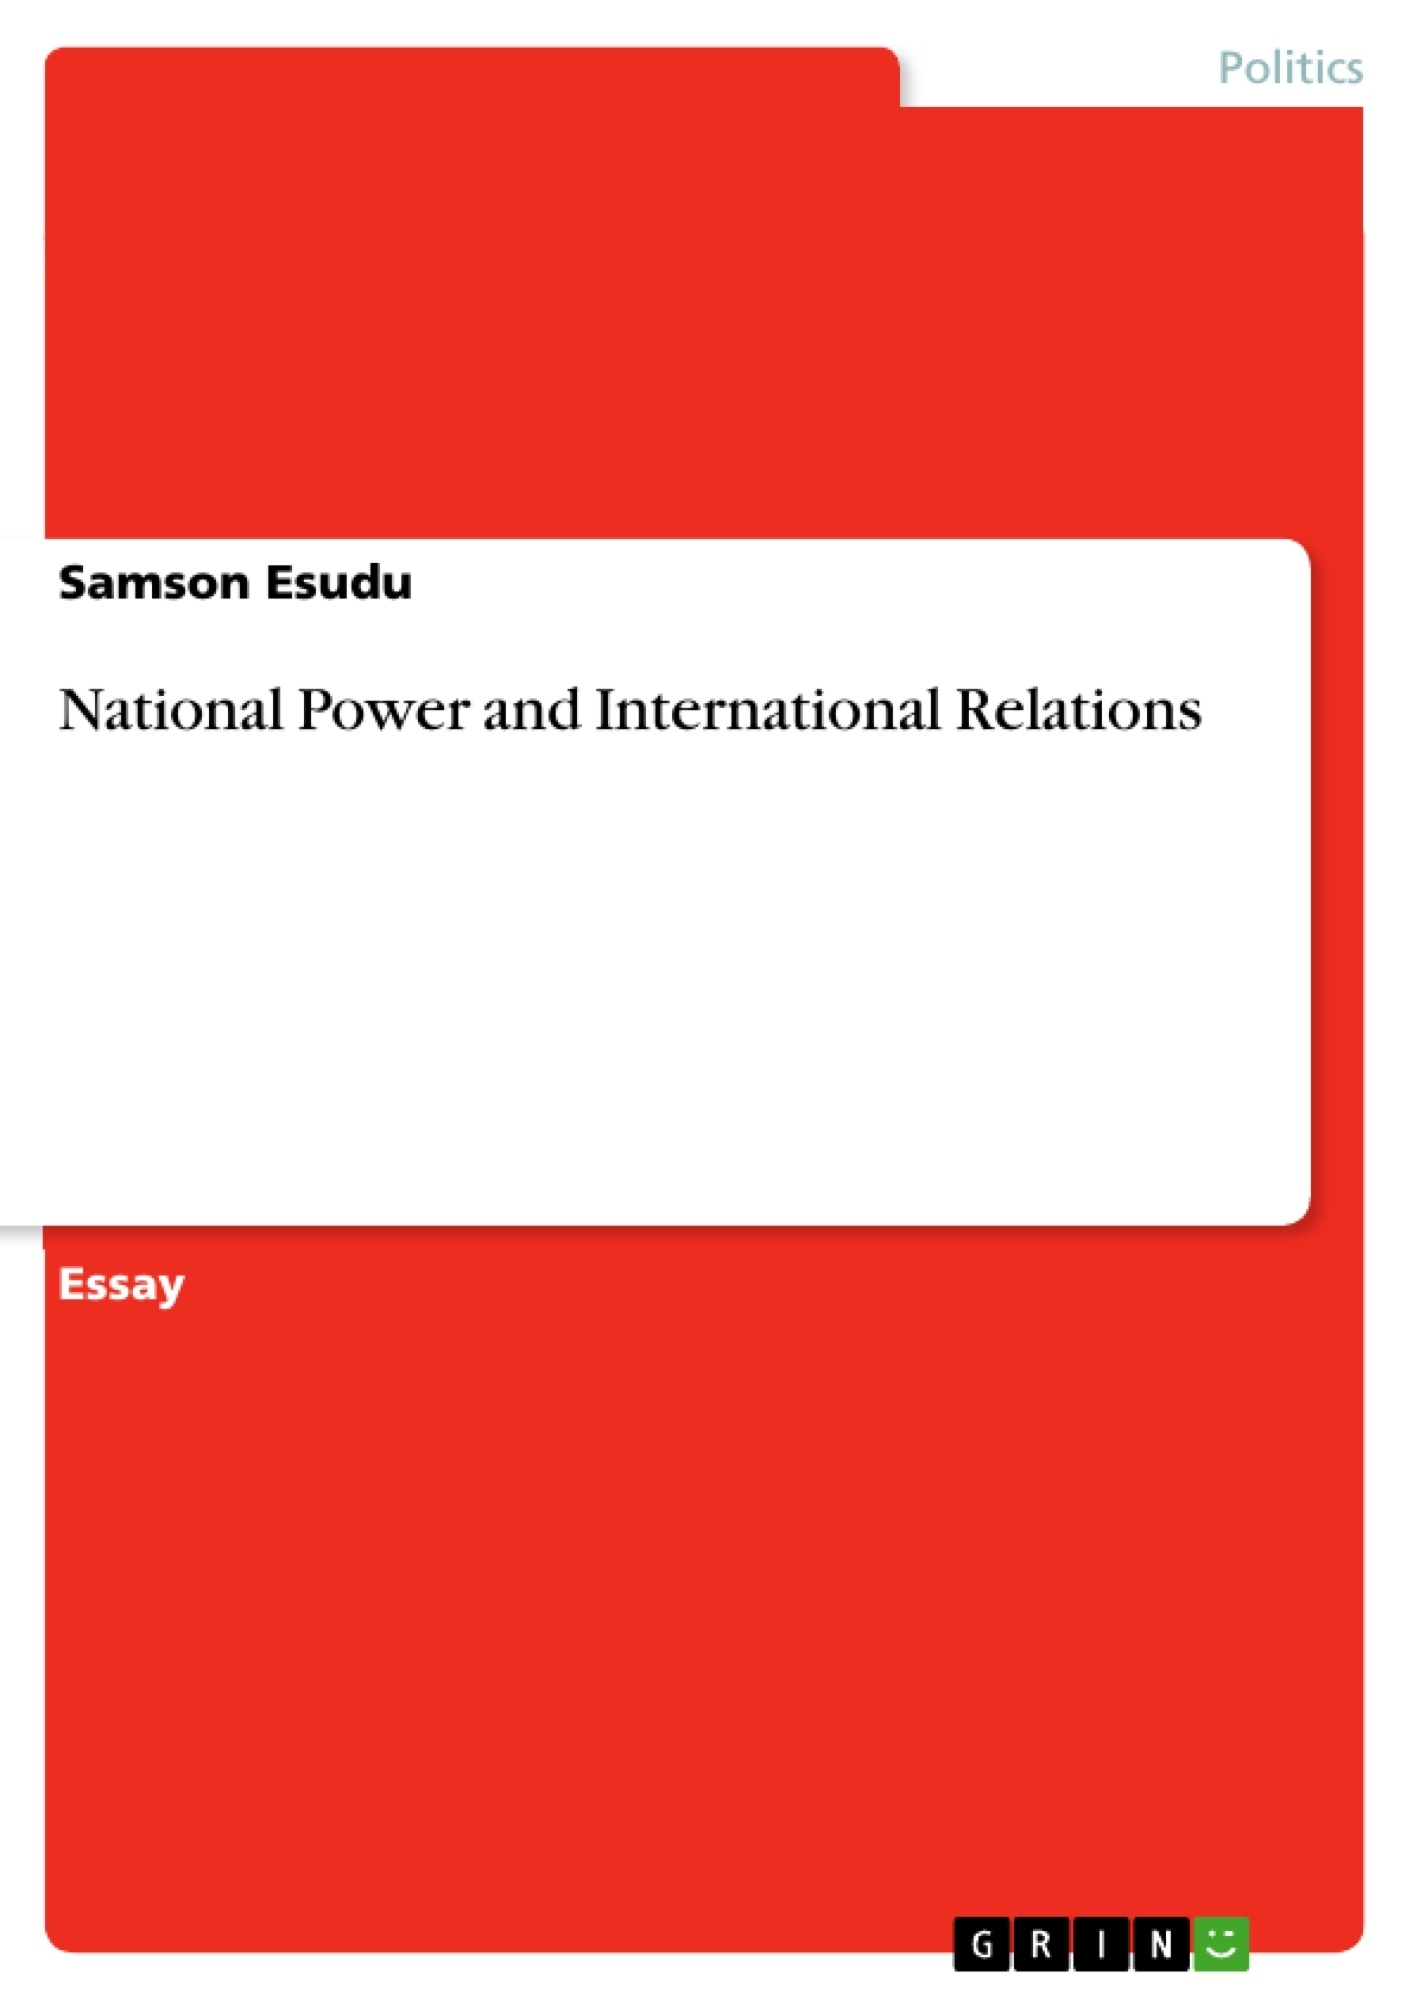 essay in institution international international power relations state theory Chapter 1 theories of power a survey towards the development of a theory of power  the embodiment of which is the state, or the community, or the society .